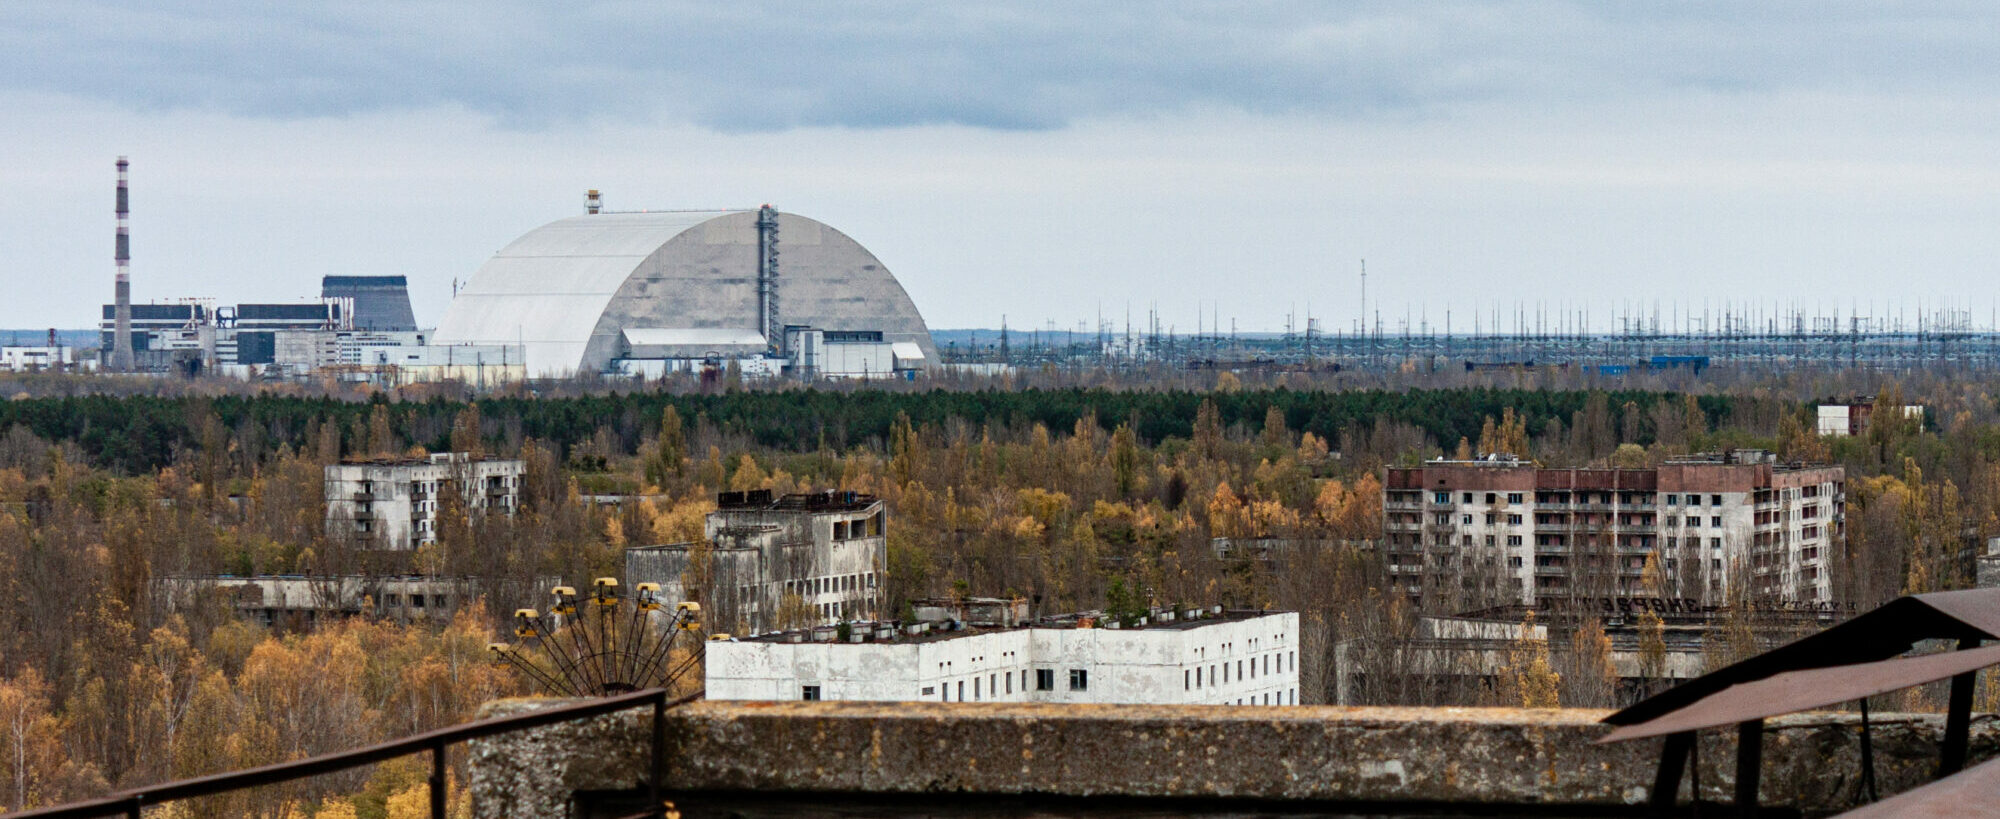 New Safe Confinment viewed from a Pripyat rooftop